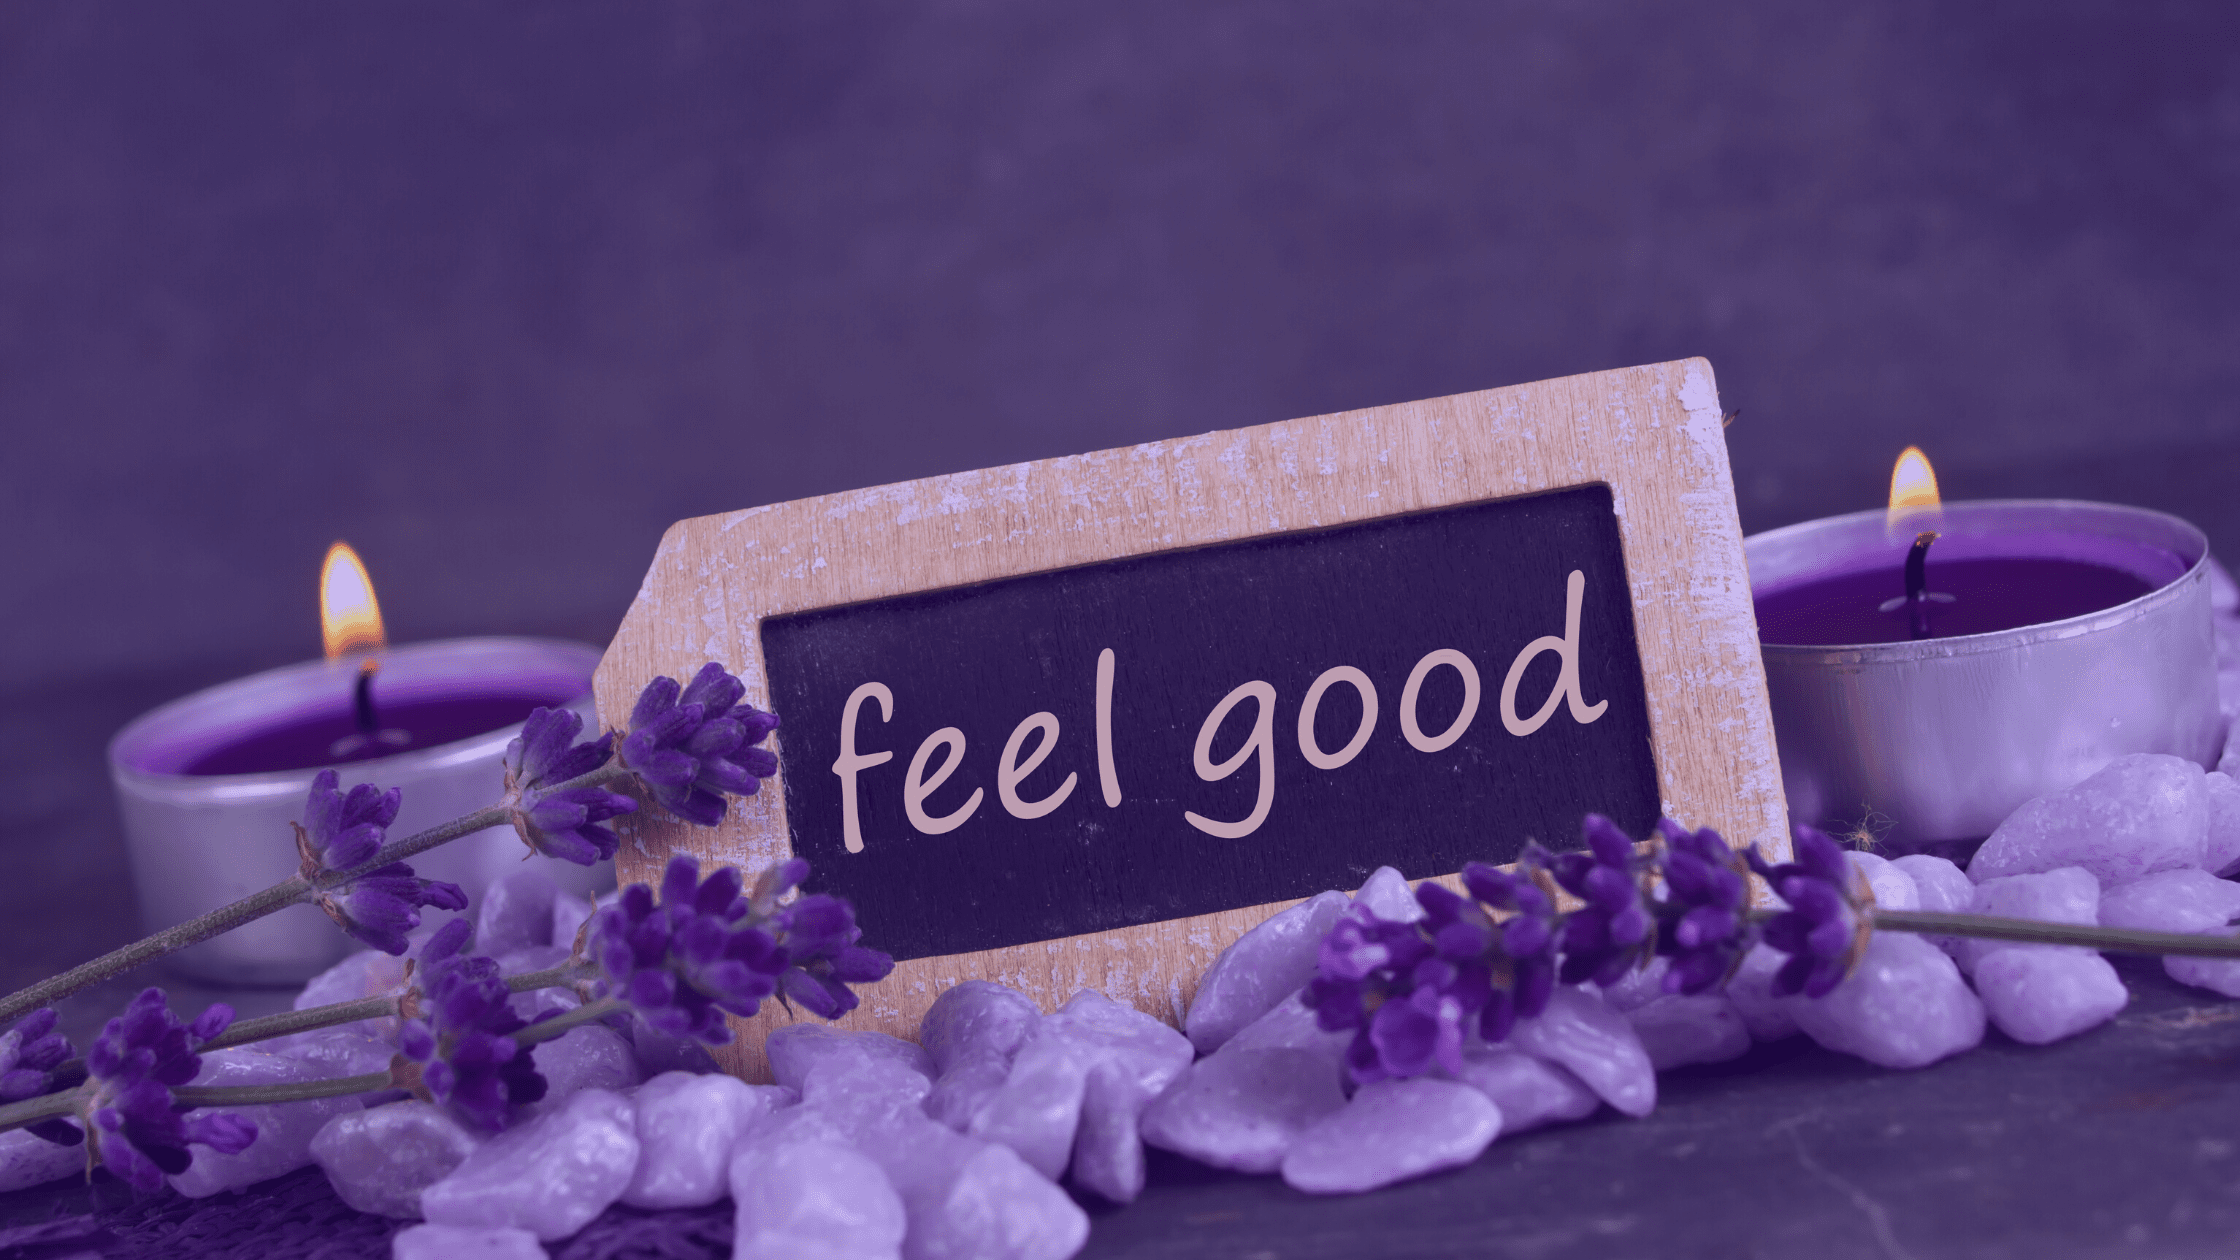 Your Feel Good Energy Superpower is the Key to Feeling Good Inside and Out Every Day